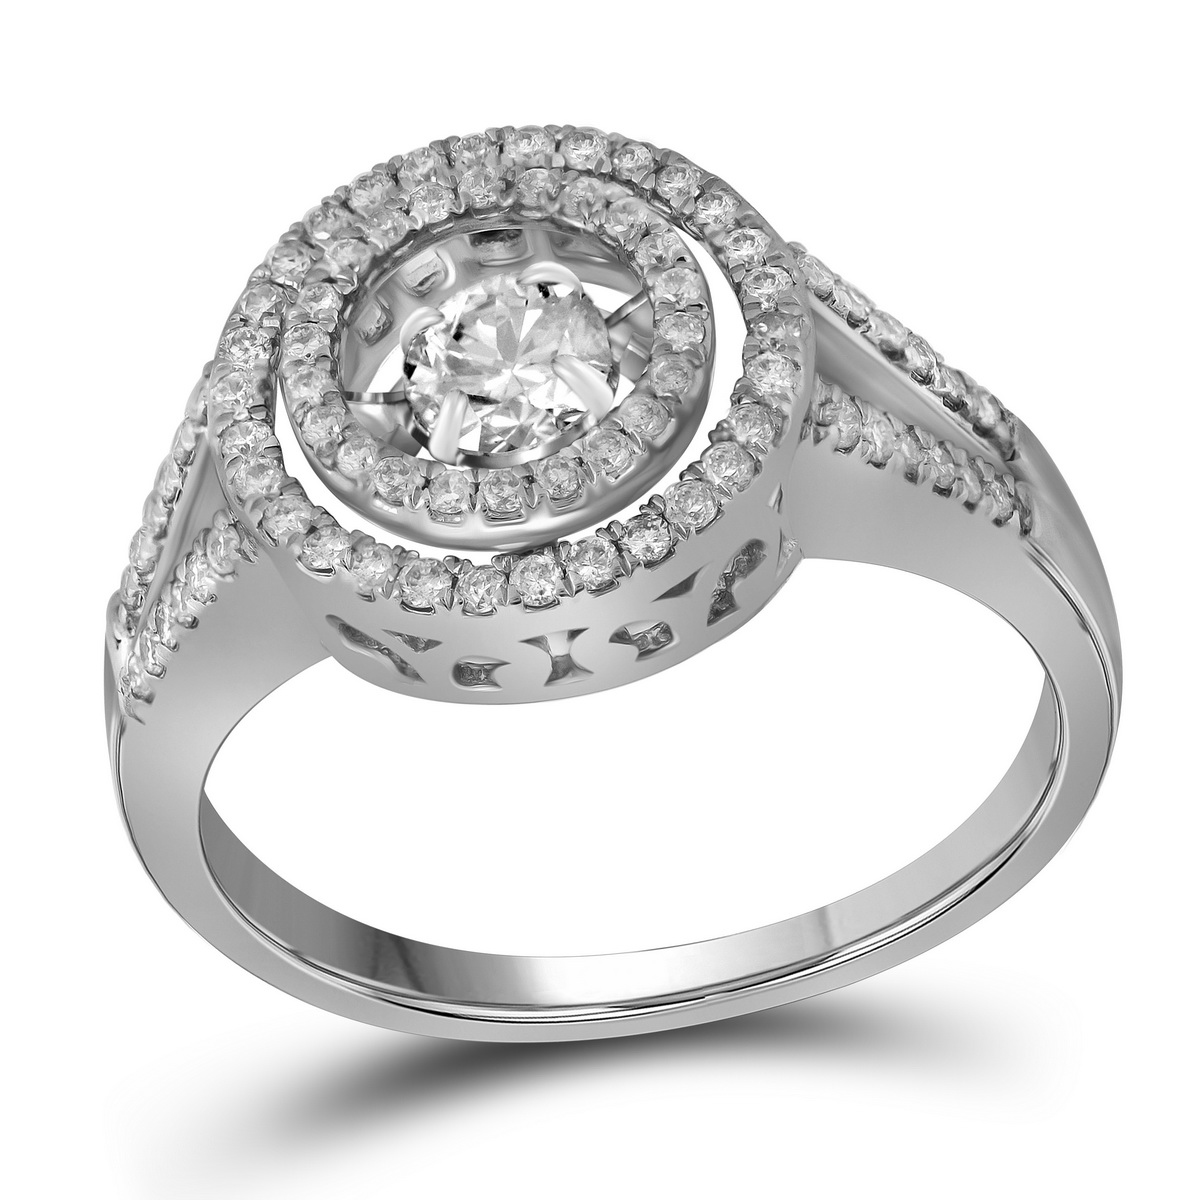 10kt White Gold Womens Round Diamond Moving Solitaire Bri...